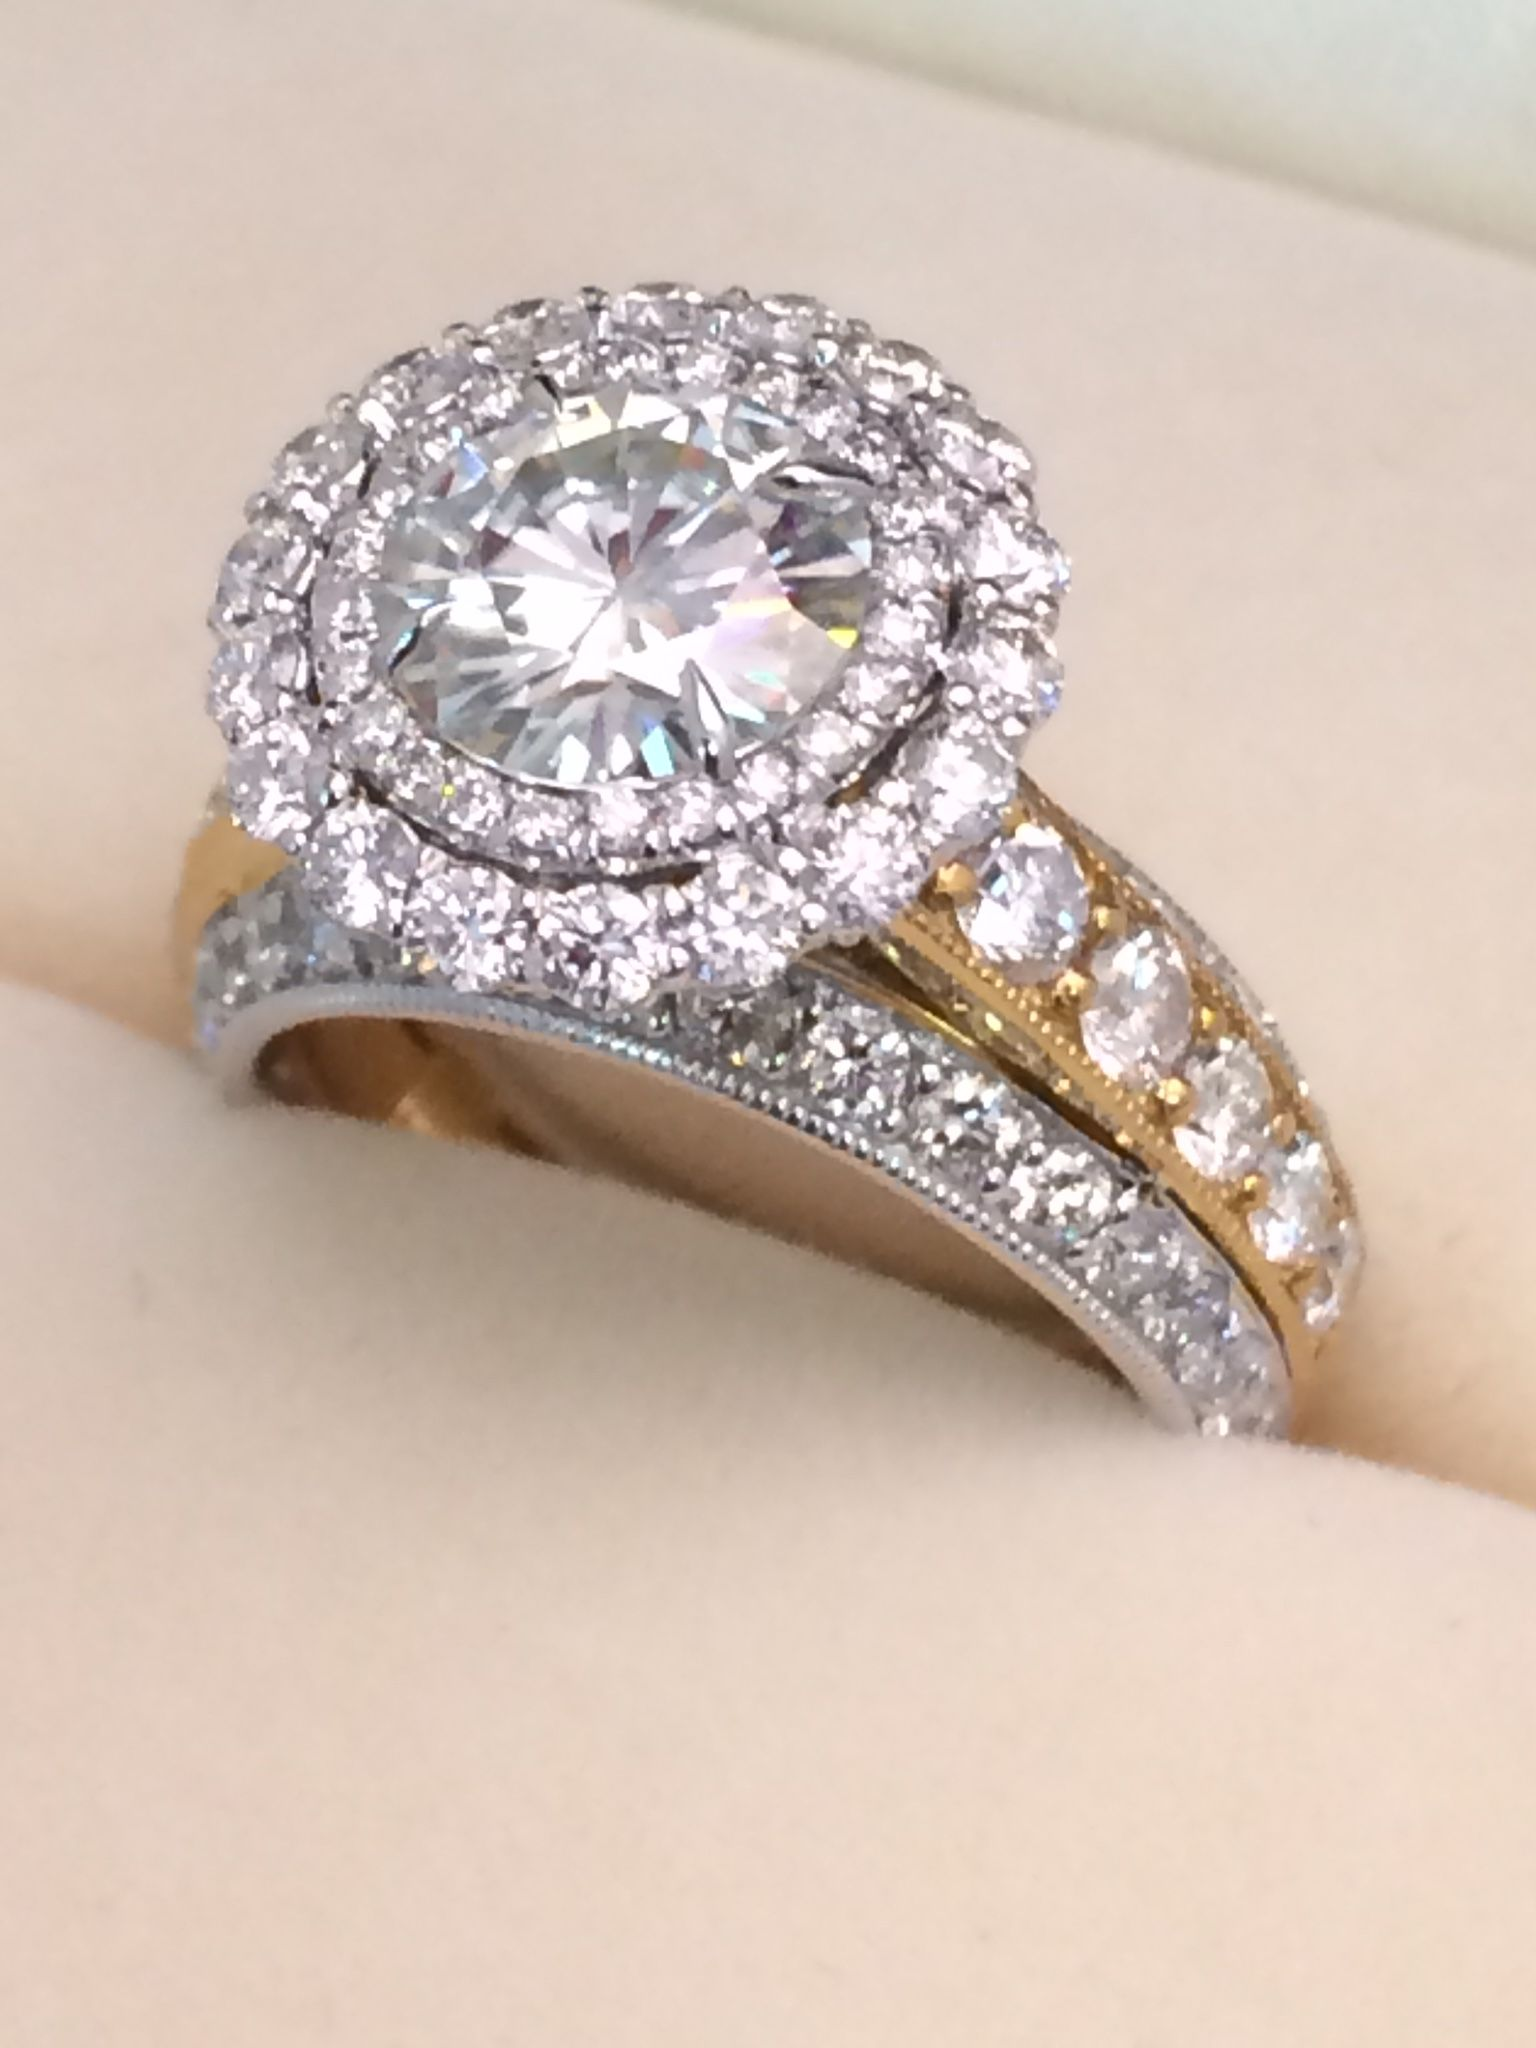 Hand Made Moissanite And Diamond Ring by Tulsa Diamond House